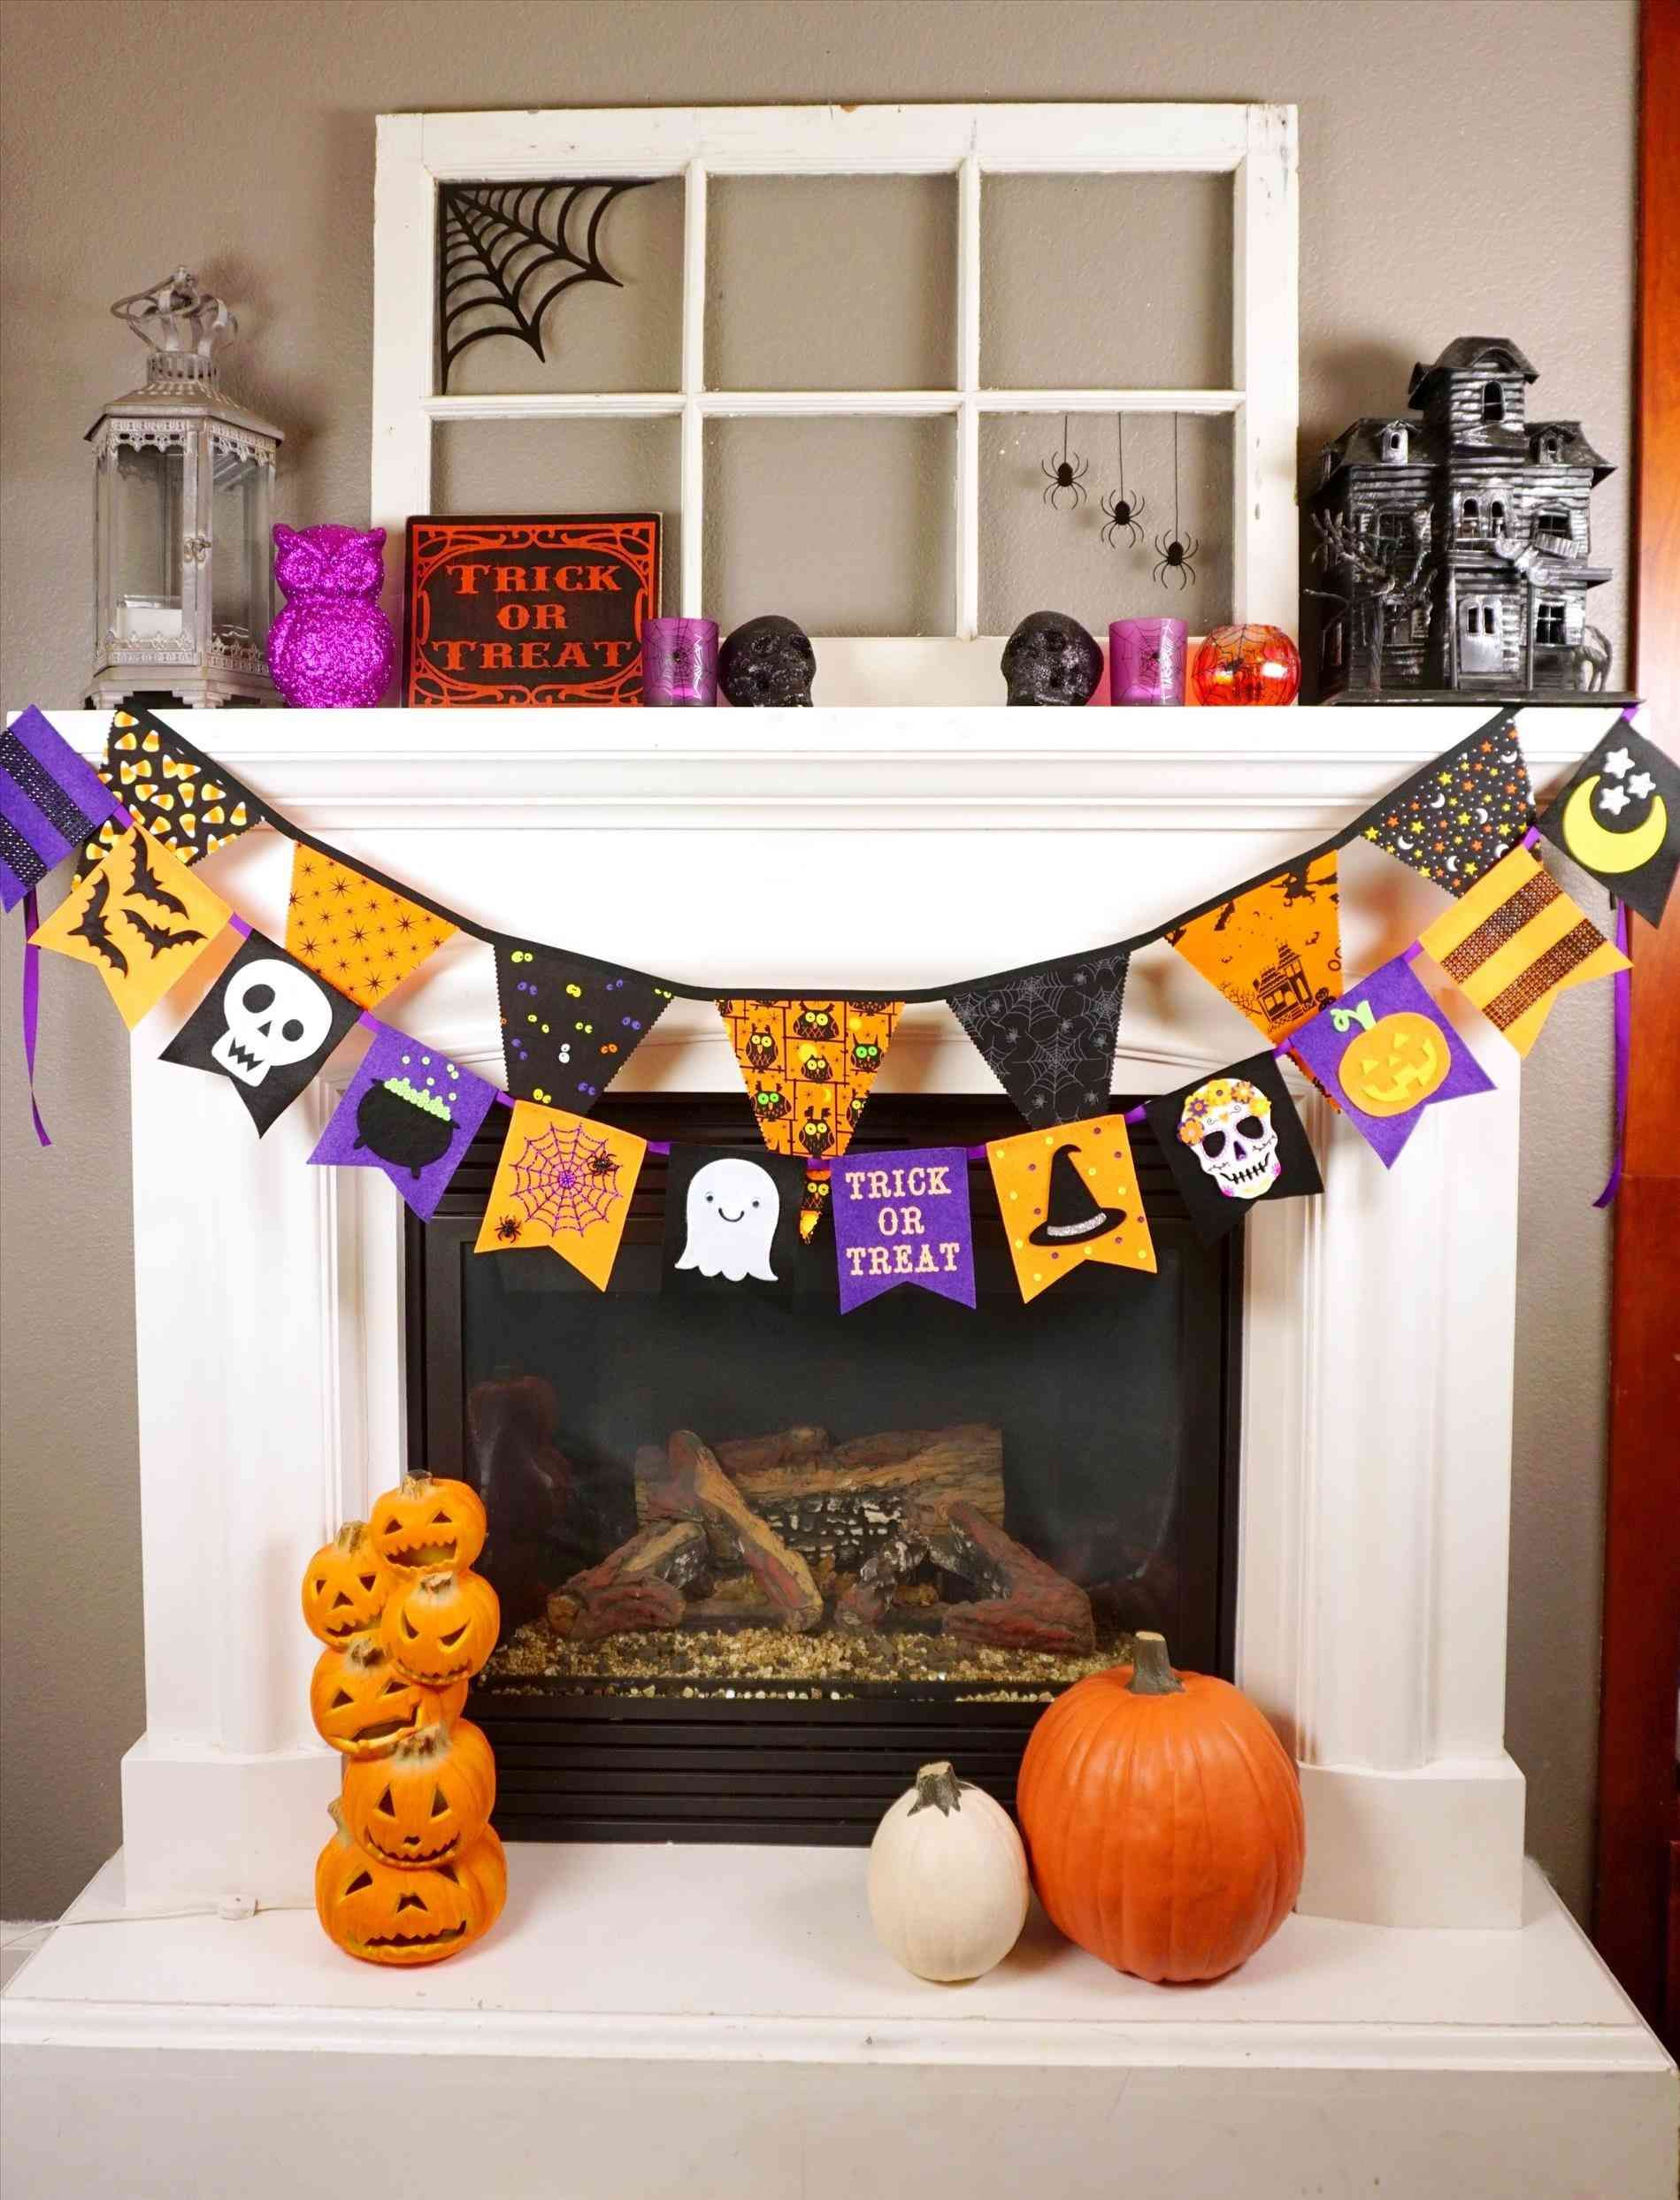 New Post homemade halloween decorations for your room visit Bobayule - Homemade Halloween Decorations